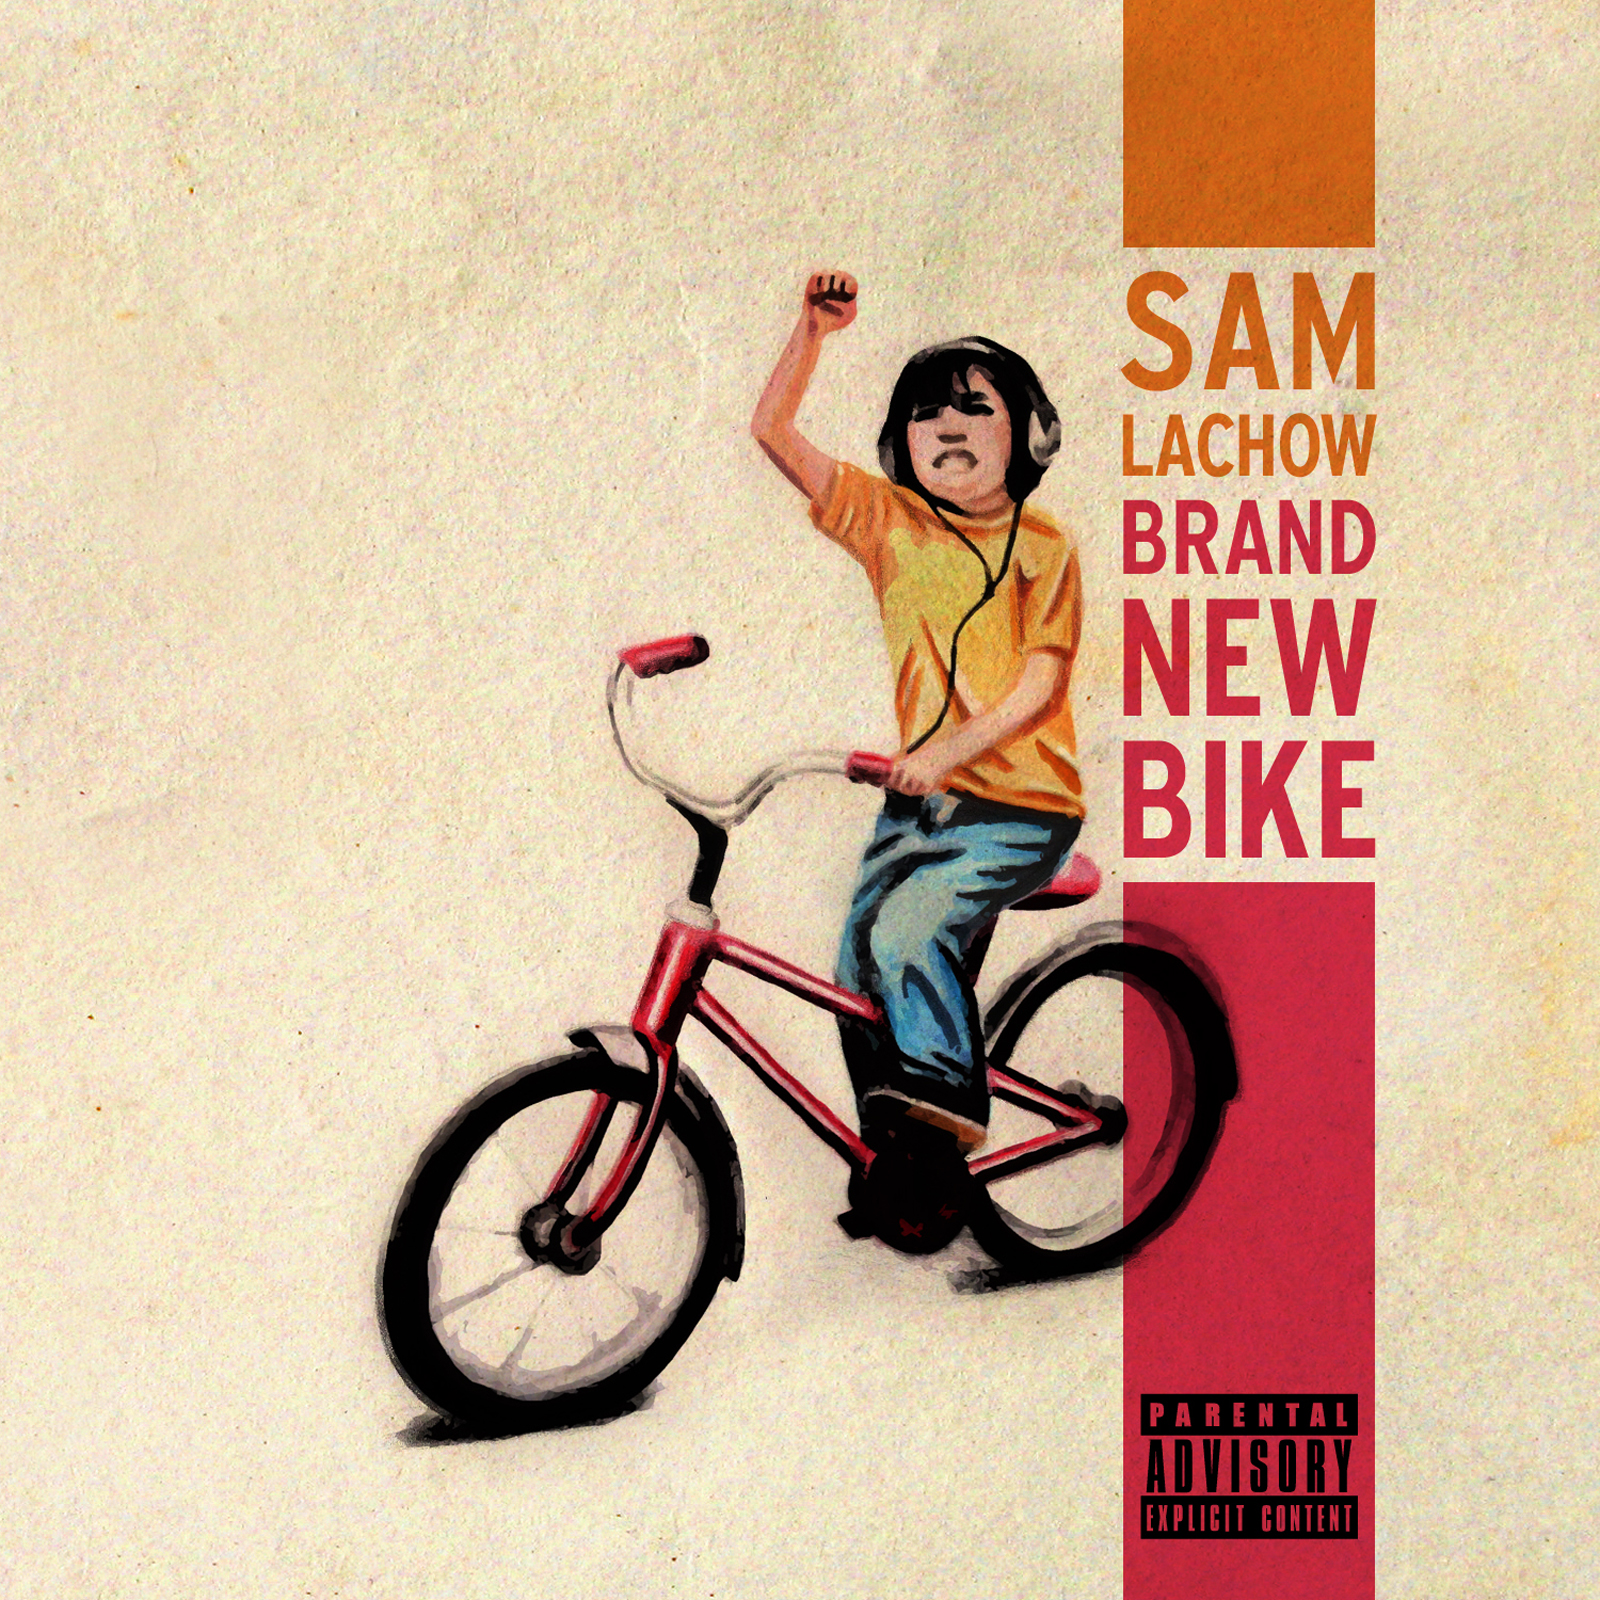 Sam Lachow Brand New Bike Album Cover